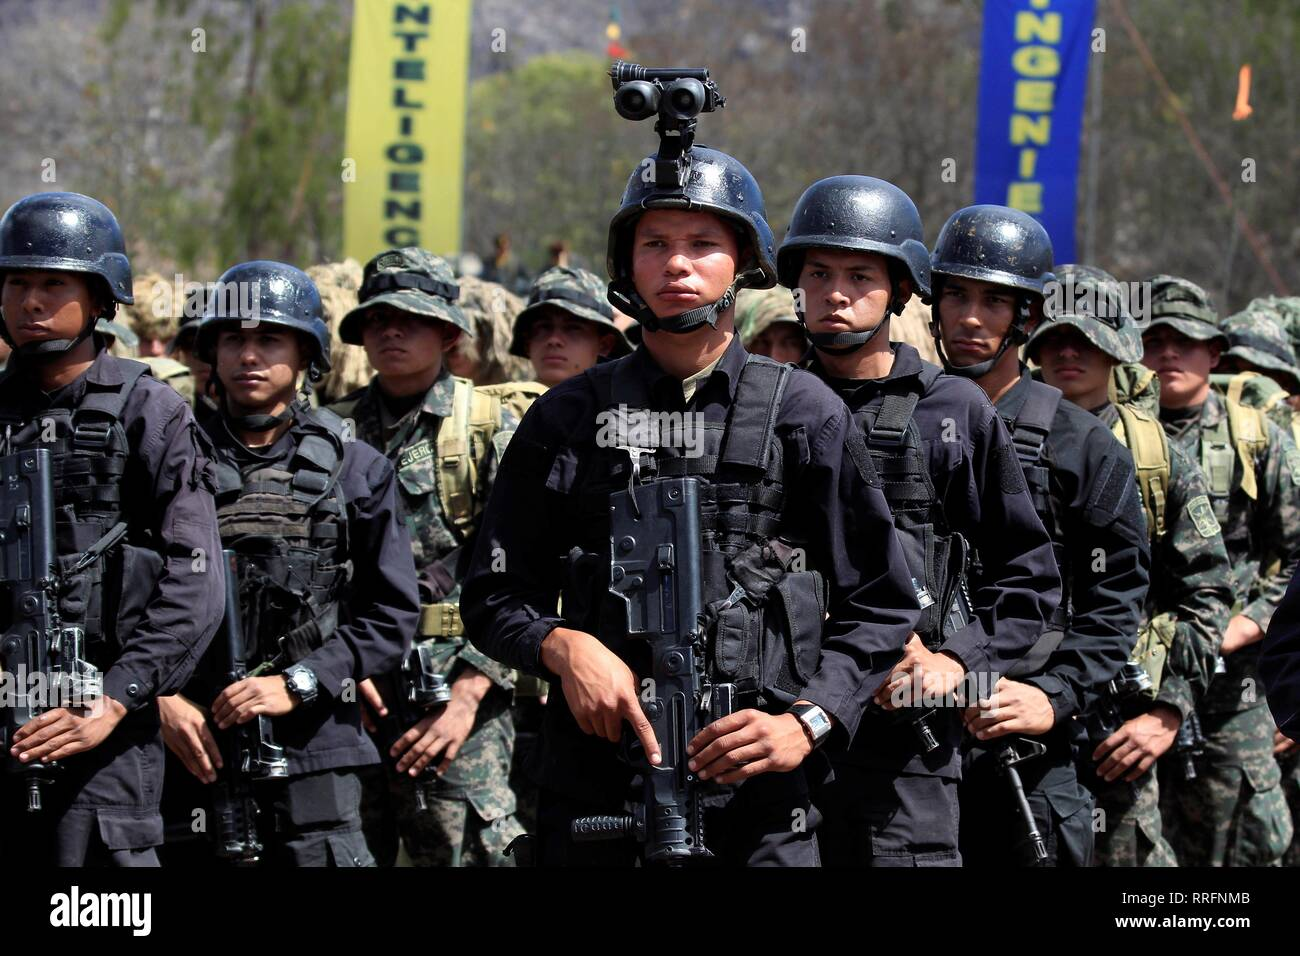 Tegucigalpa, Honduras. 25th Feb, 2019. Members of the Hondurean Special Forces participate on the promotion of Honduras Armed Forces members, at military unity Aldea Mateo in Tegucigalpa, Honduras, 25 February 2019. Credit: Gustavo Amador/EFE/Alamy Live News - Stock Image